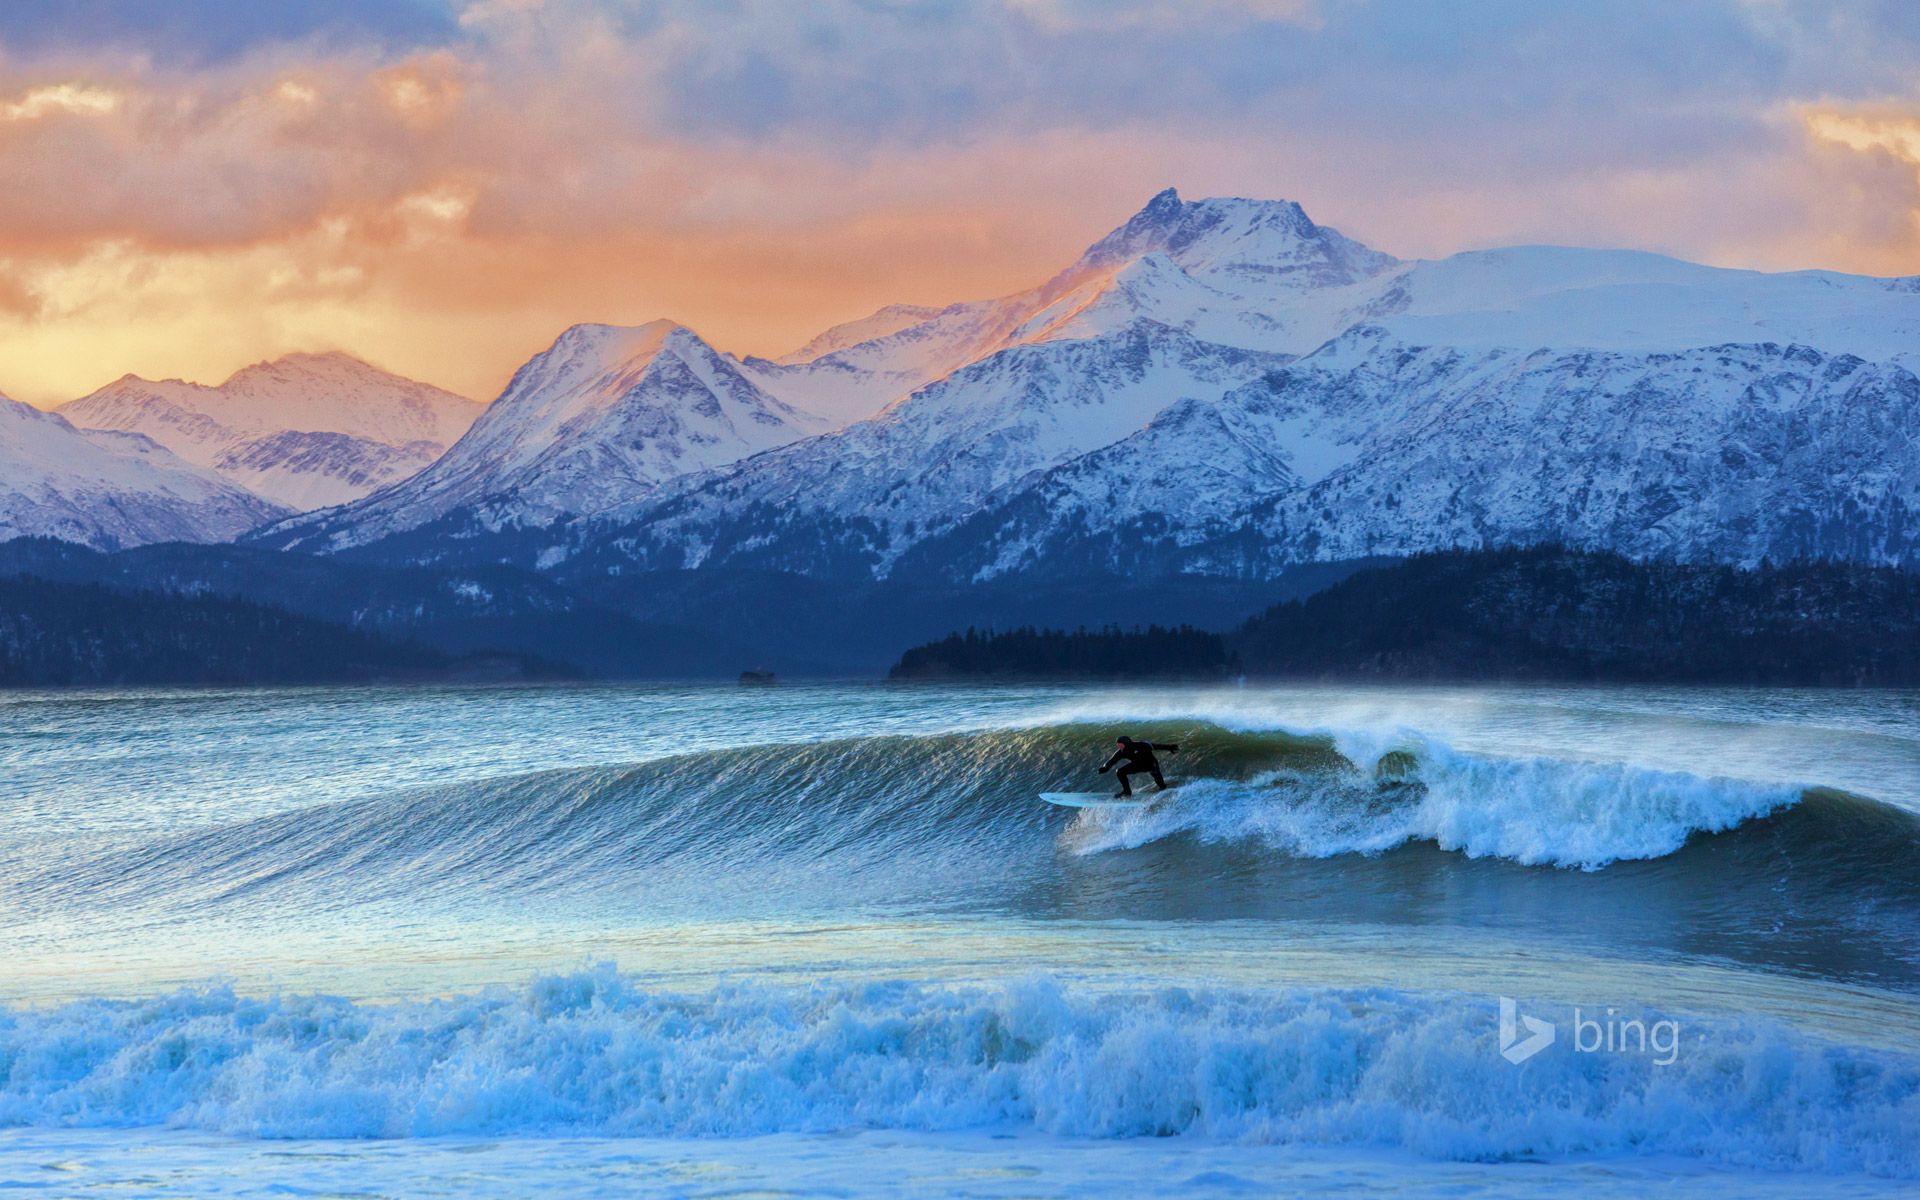 Don 'Iceman' McNamara surfing in Kachemak Bay, Alaska